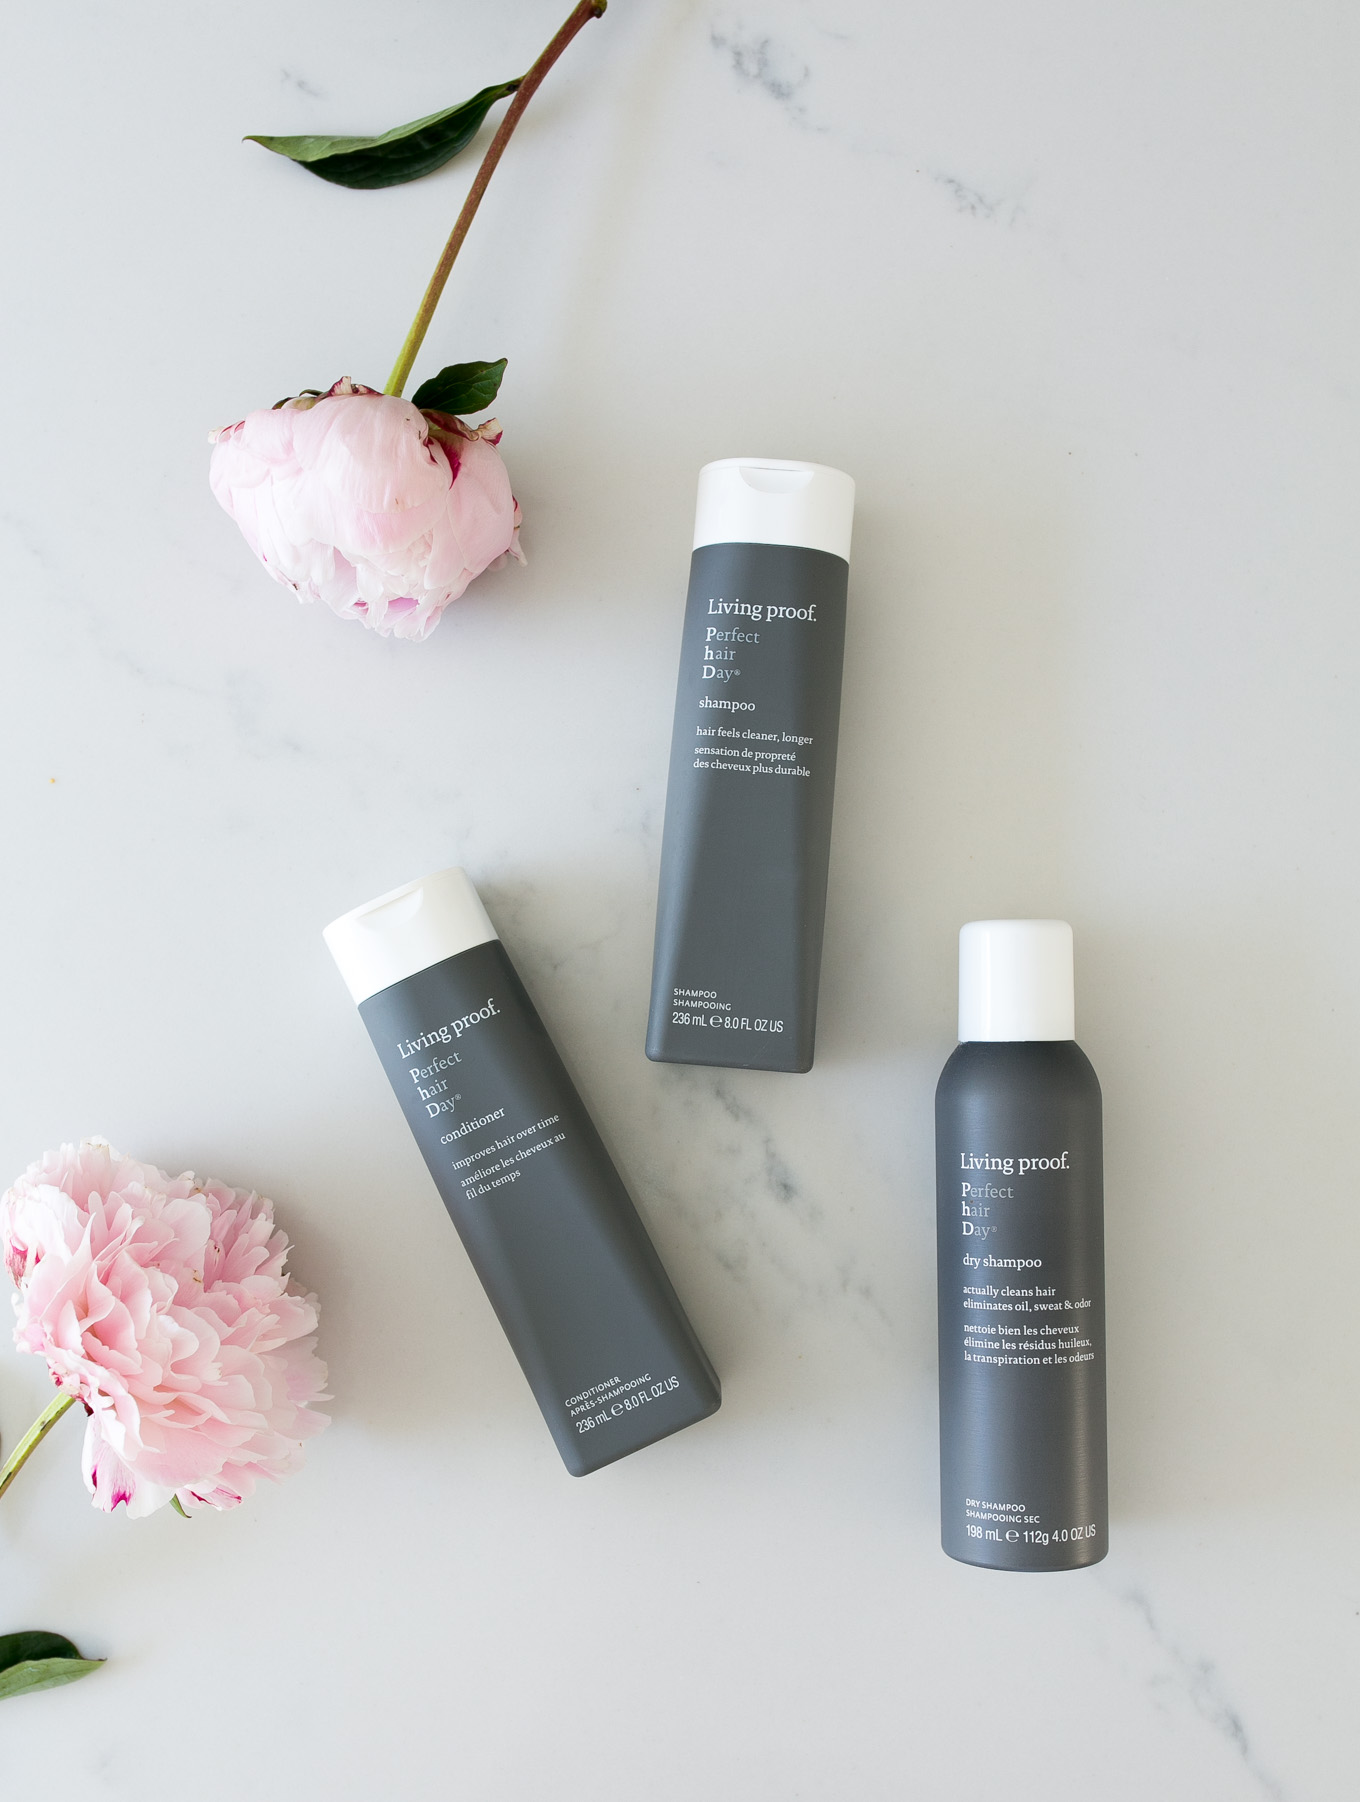 Blogger Daryl-Ann Denner of Something Beautiful shares her favorite hair care products including Living Proof Perfect Hair Day Shampoo and Conditioner and Dry Shampoo